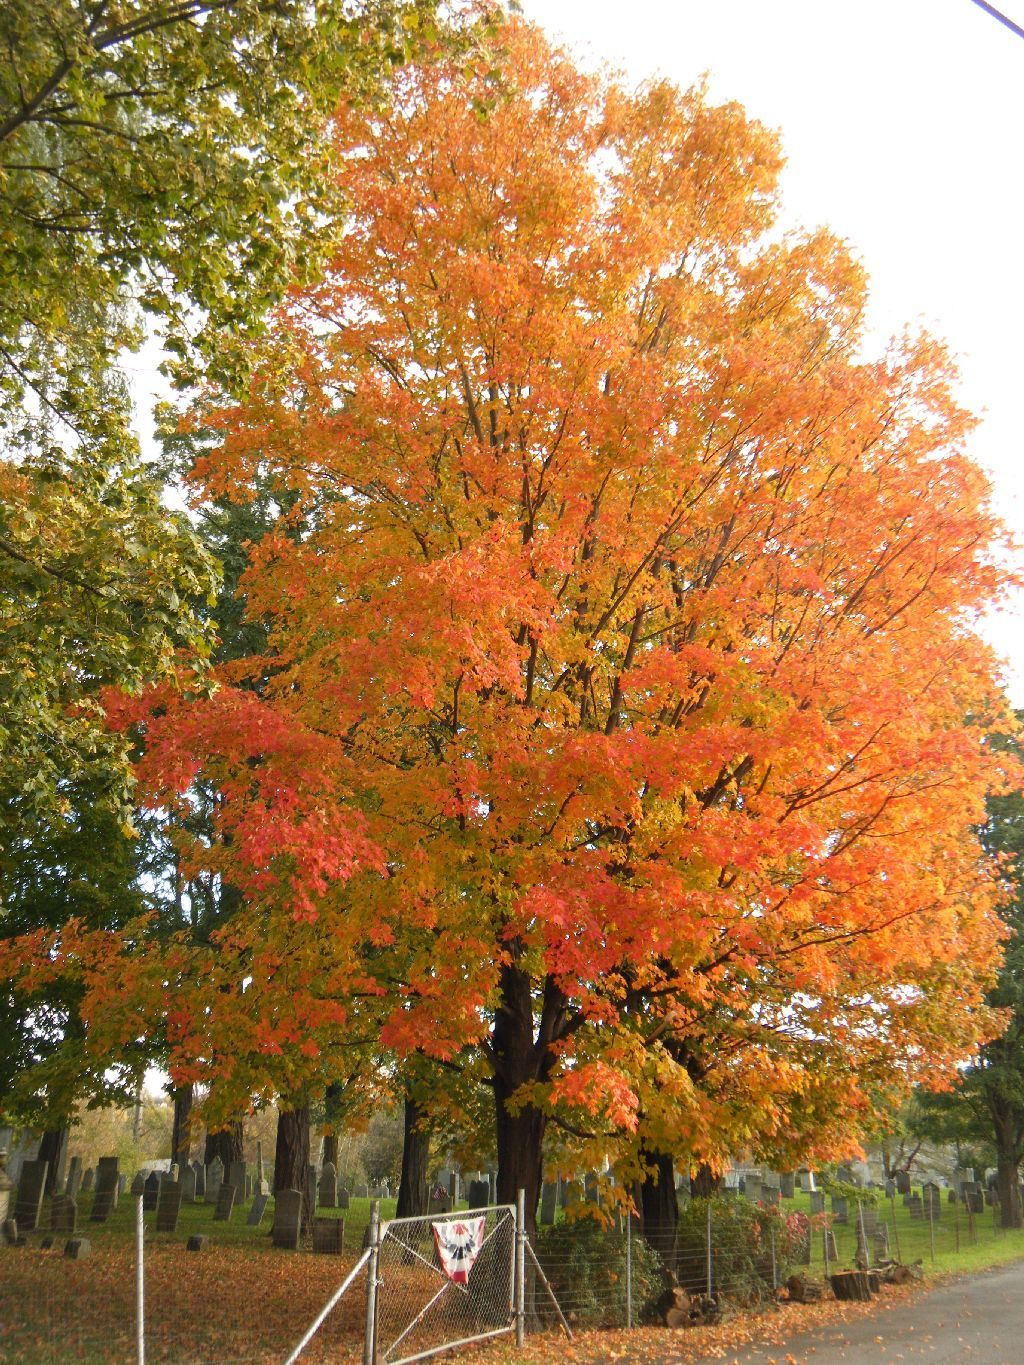 sugar maple a beautiful tree is the sugar maple with color turning